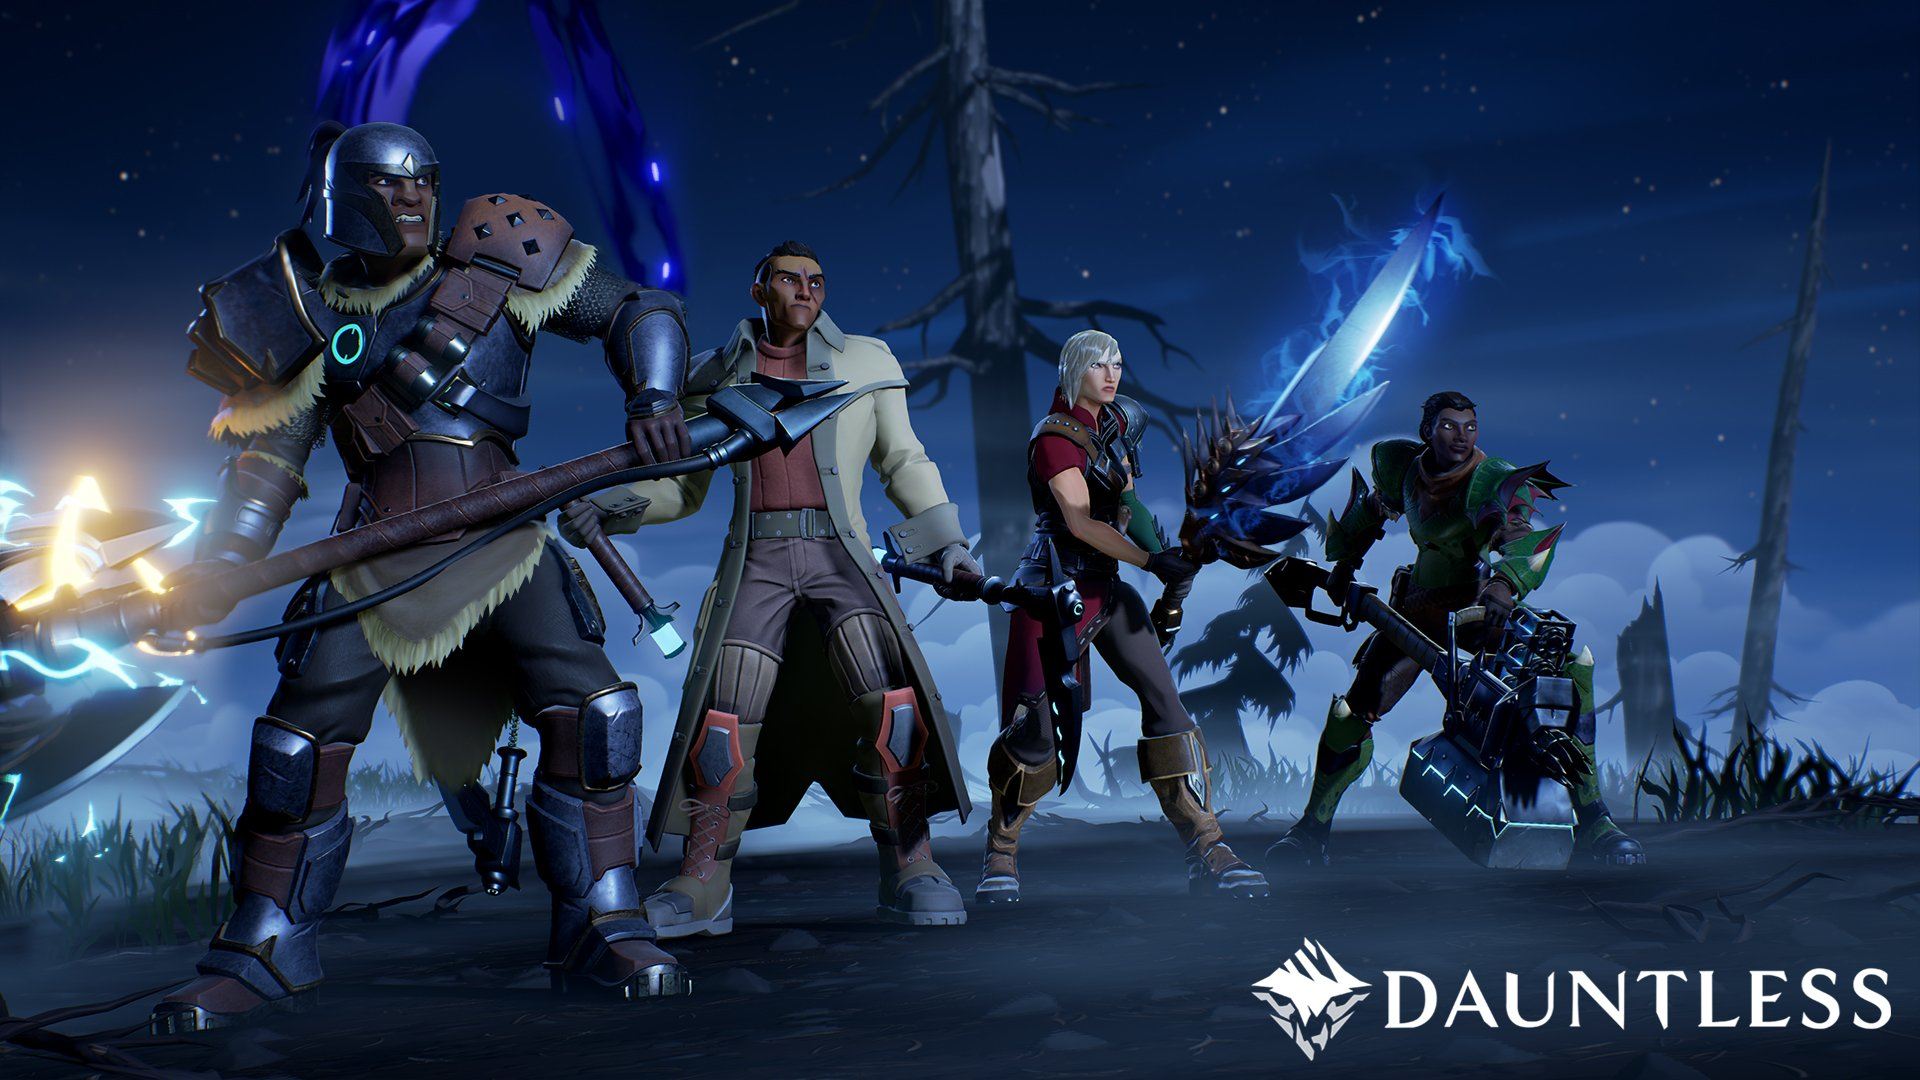 How to play with friends in Dauntless | AllGamers